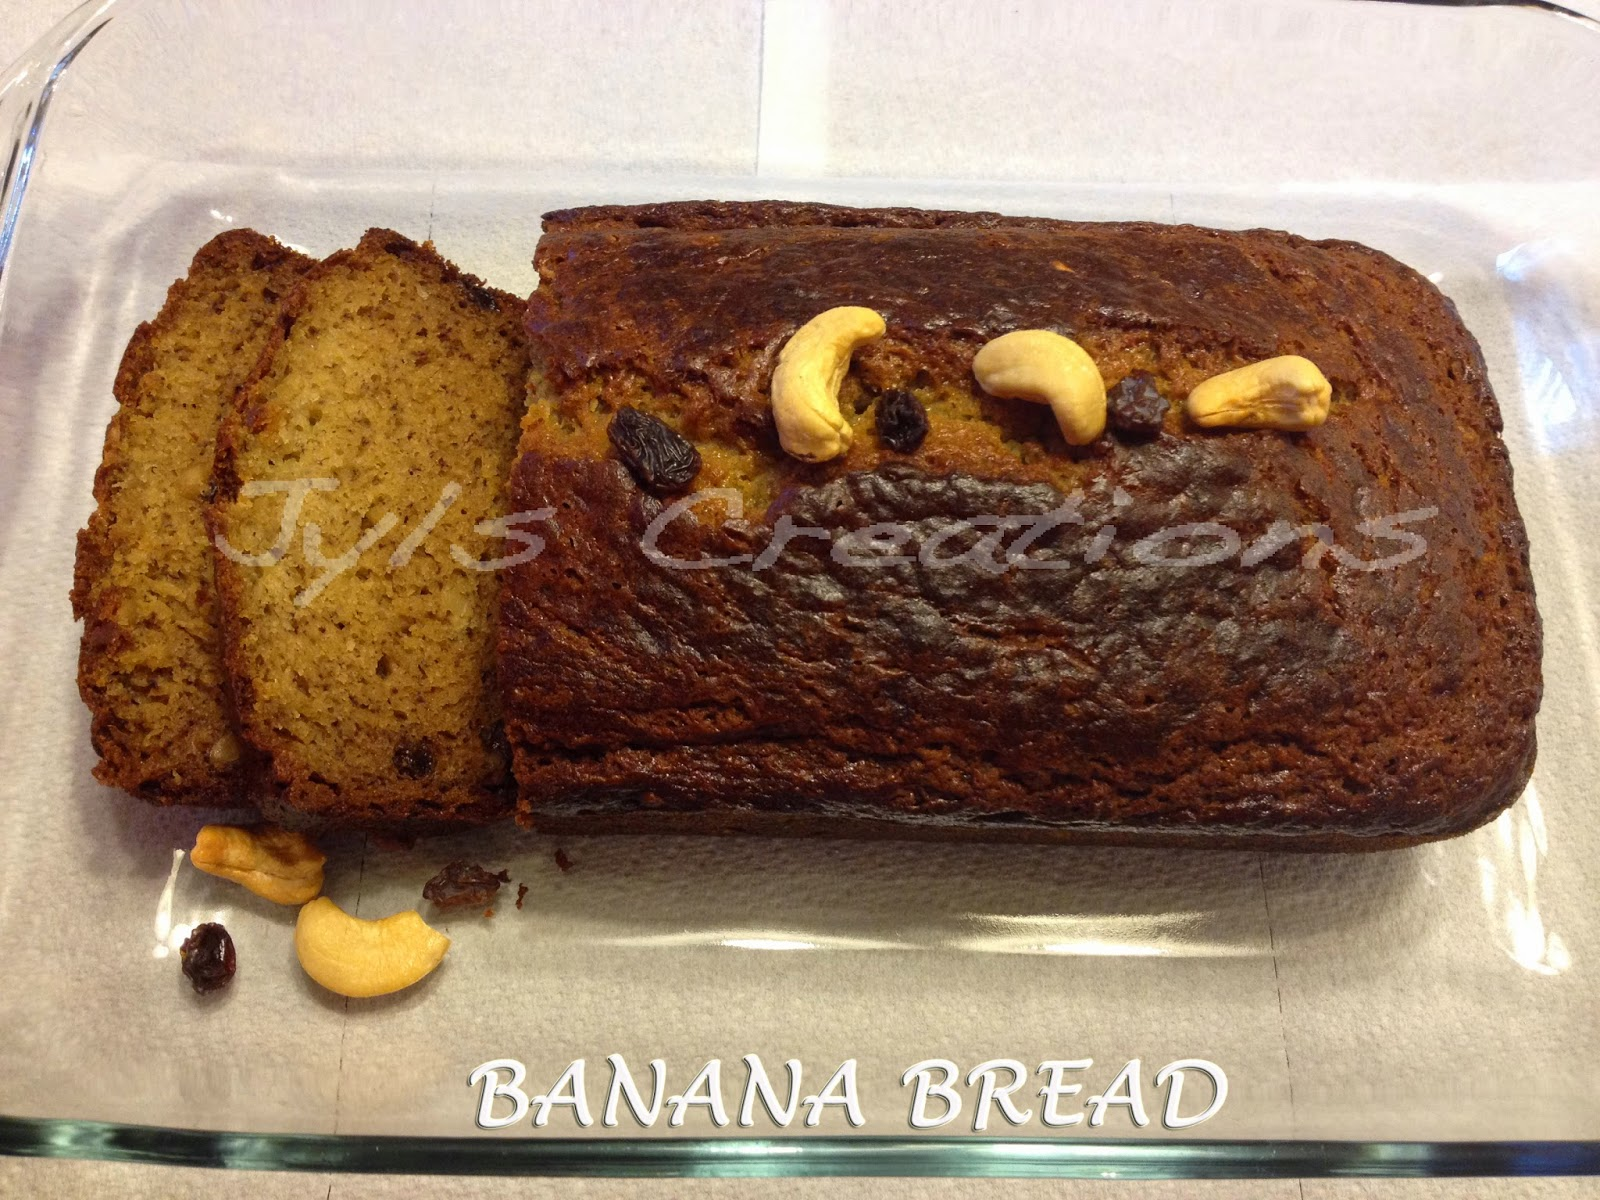 Health tipsbaby foodsbeauty tipshomemade recipes jyls creations naturally sweetened banana breadrfect for a healthy snack forumfinder Image collections